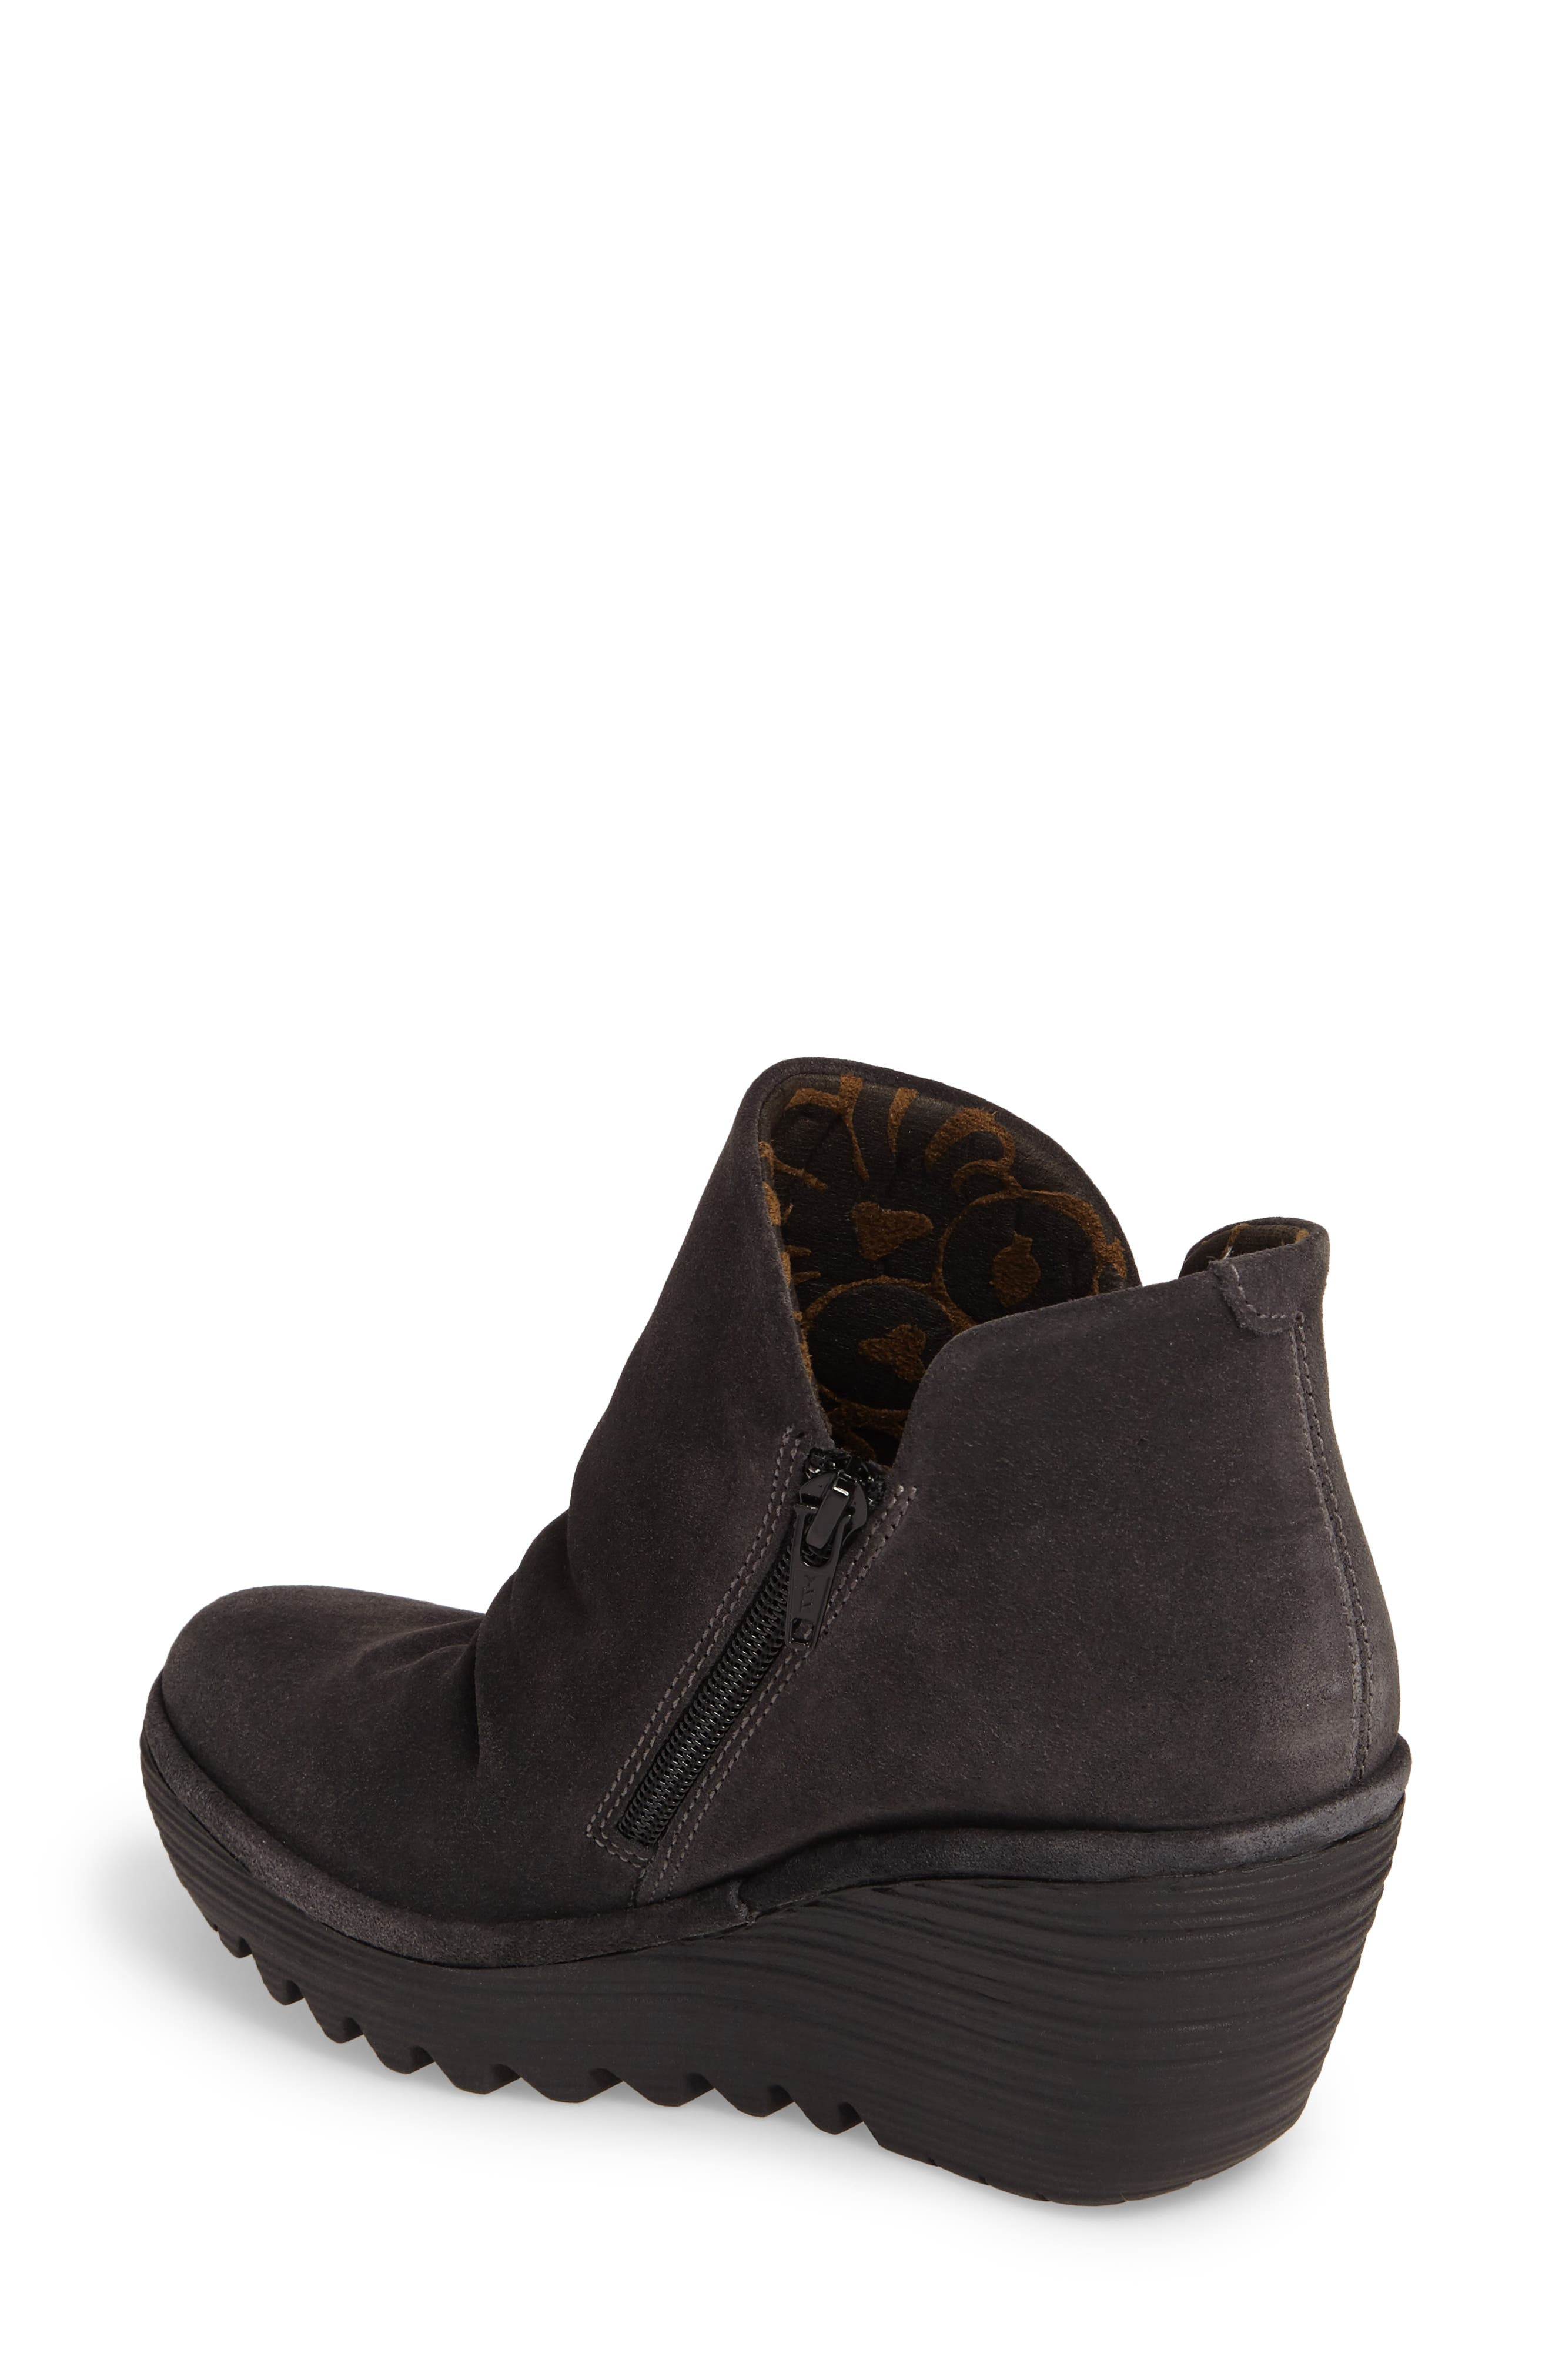 'Yip' Wedge Bootie,                             Alternate thumbnail 2, color,                             BLACK